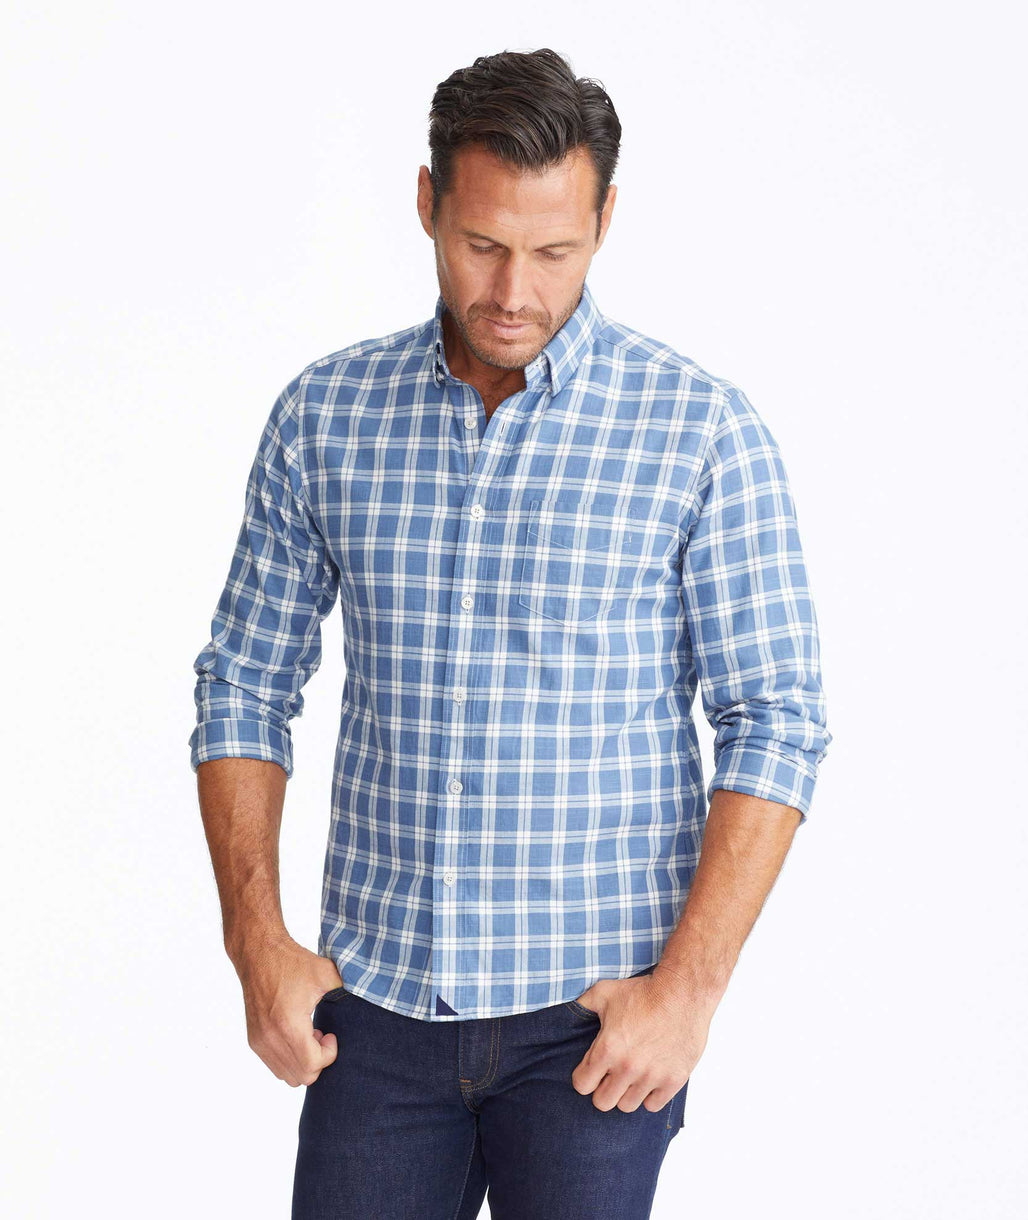 Model wearing a Blue Classic Cotton Carmenet Shirt